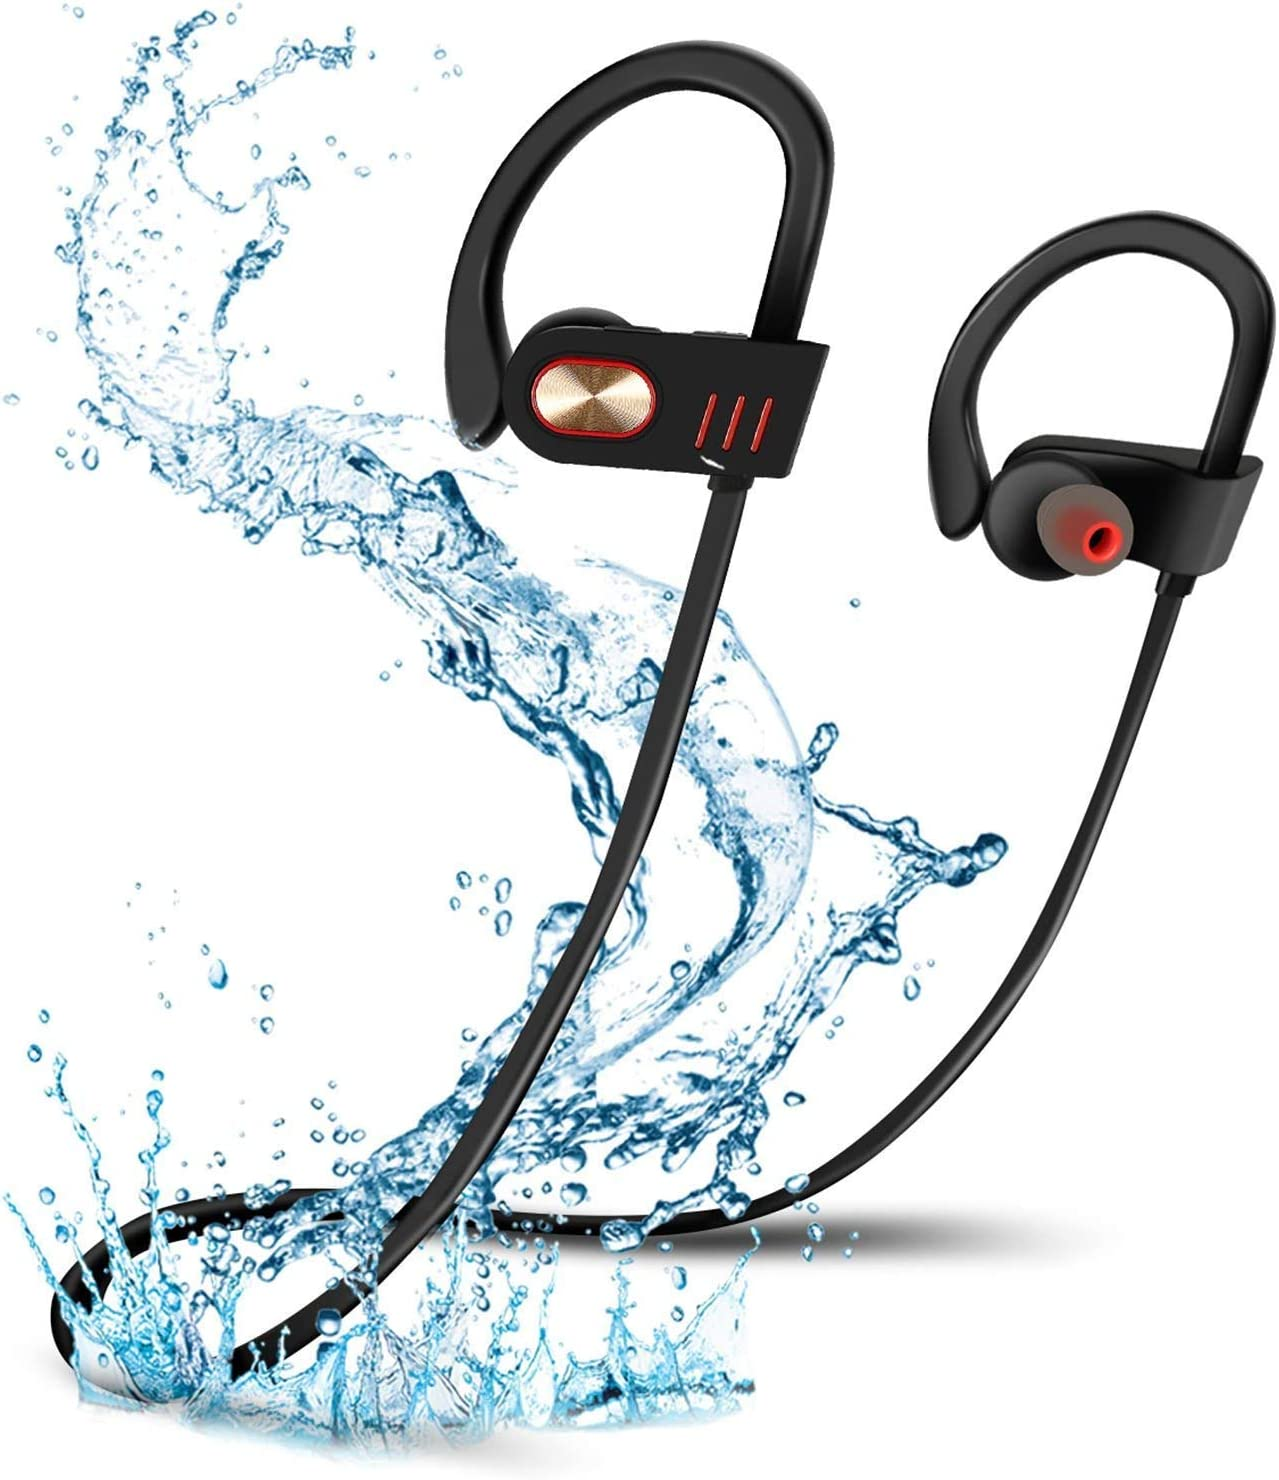 Bluetooth Headphones, Best Wireless Sports Earphones HD Stereo Sweatproof Earbuds with Mic Ergonomic Design for Gym Running Workout 8 Hour Battery Noise Cancelling Headsets Black M32